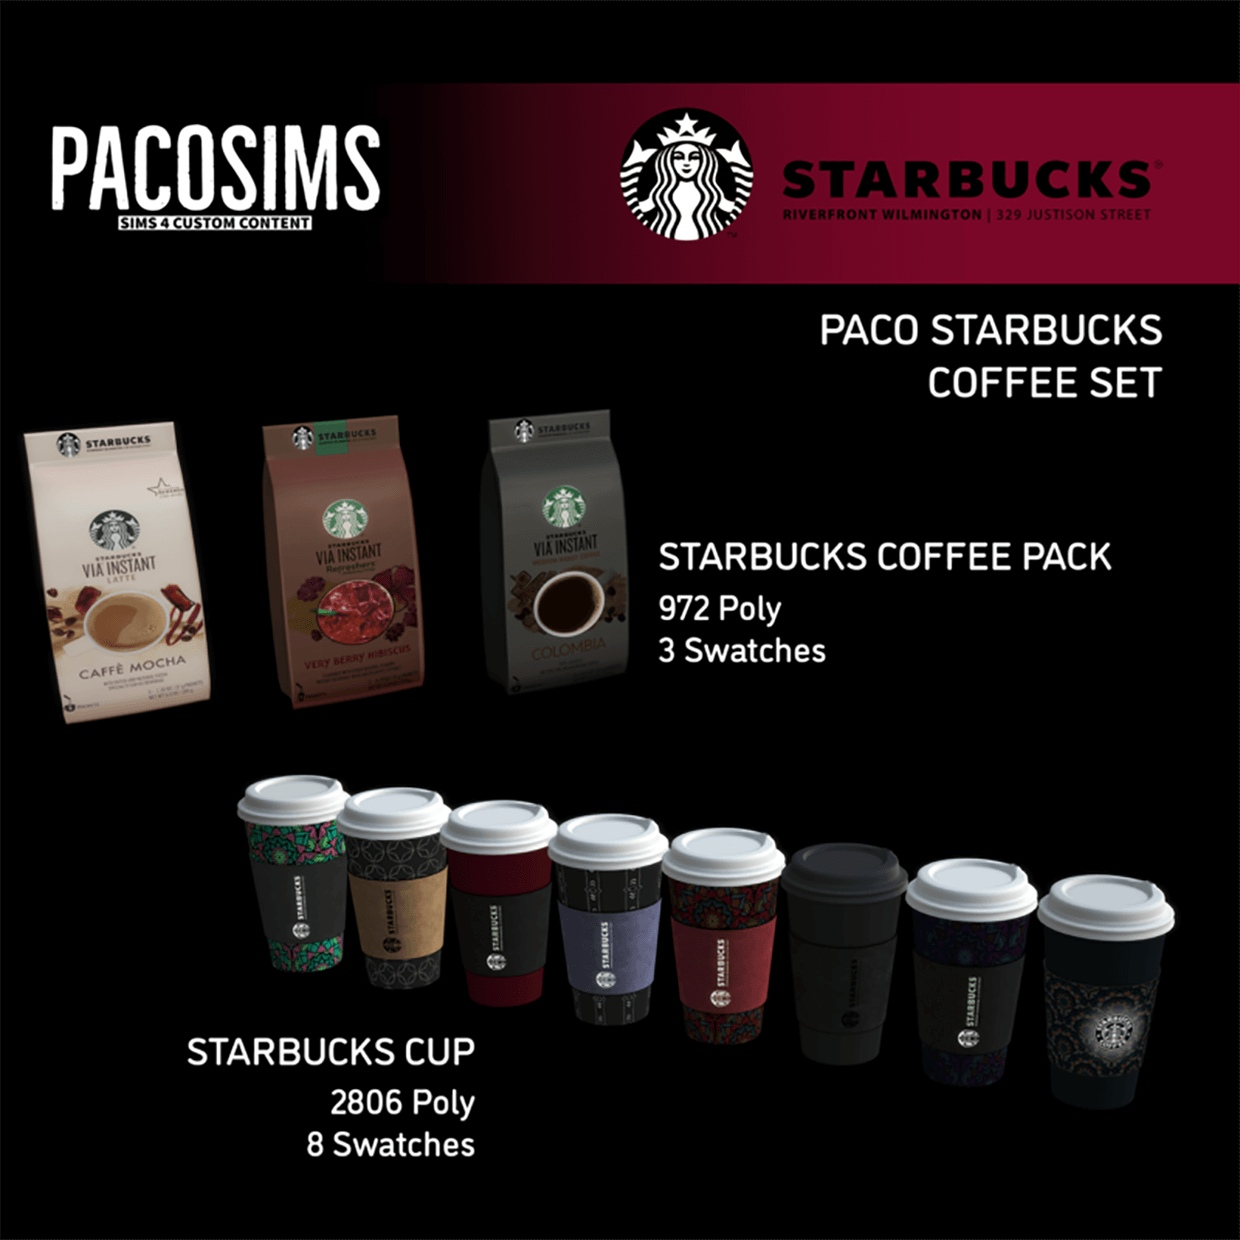 Starbucks coffee set by PacoSims